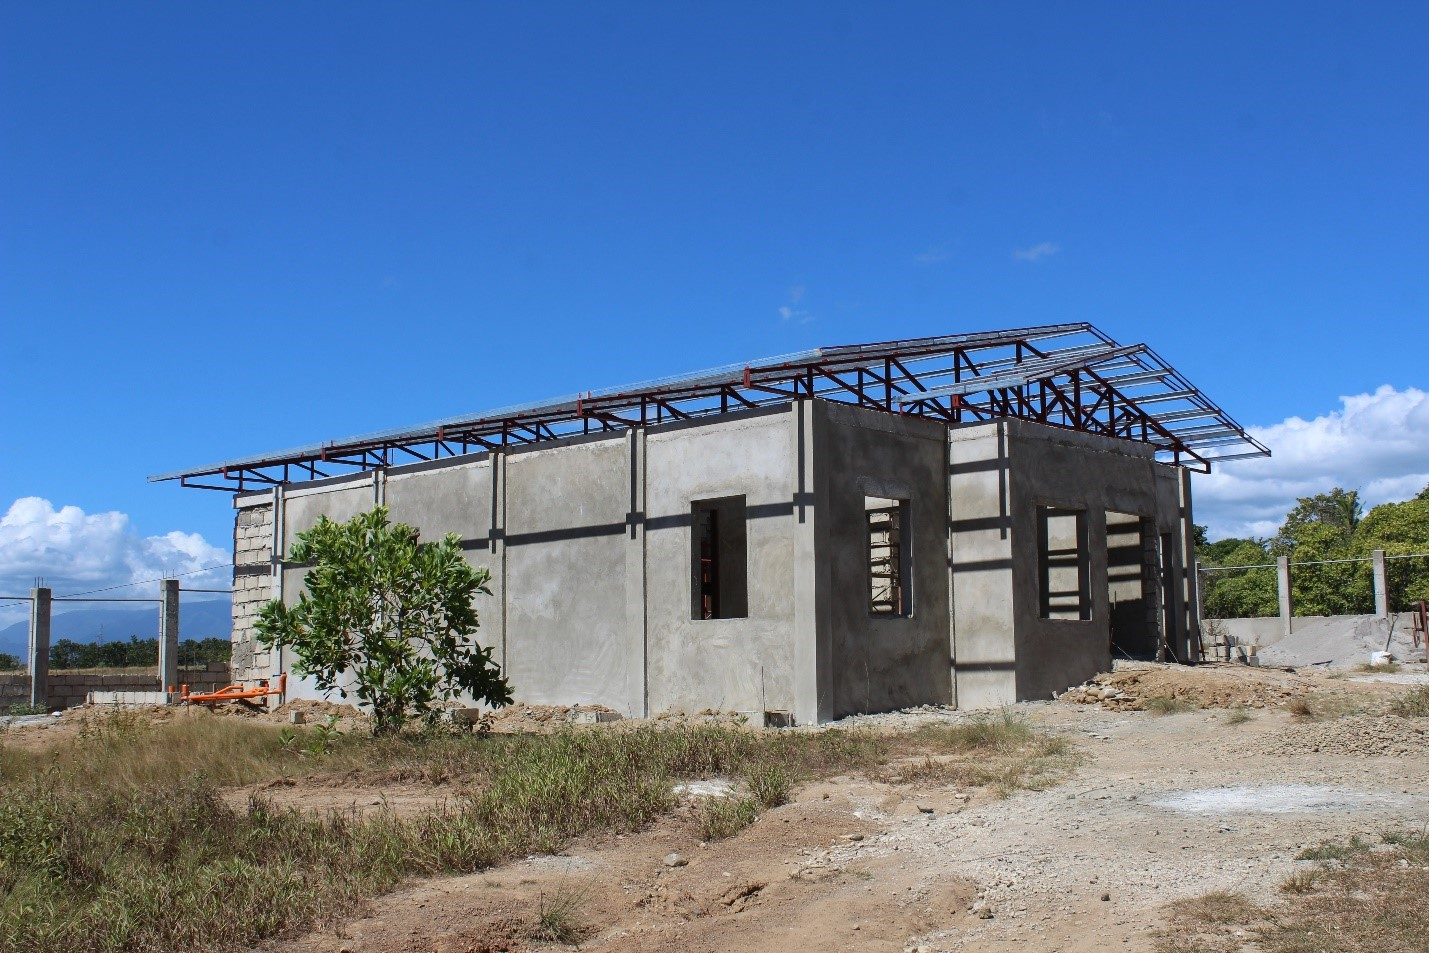 The yet to be completed Mango Processing Facility and Marketing of the I-REAP Component will cater to more than 300 members of its proponent group as well as other mango growers of neighboring barangays.(Photo by Leira Vic Colongon, DA-PRDP MIMAROPA RPCO InfoACE Unit)